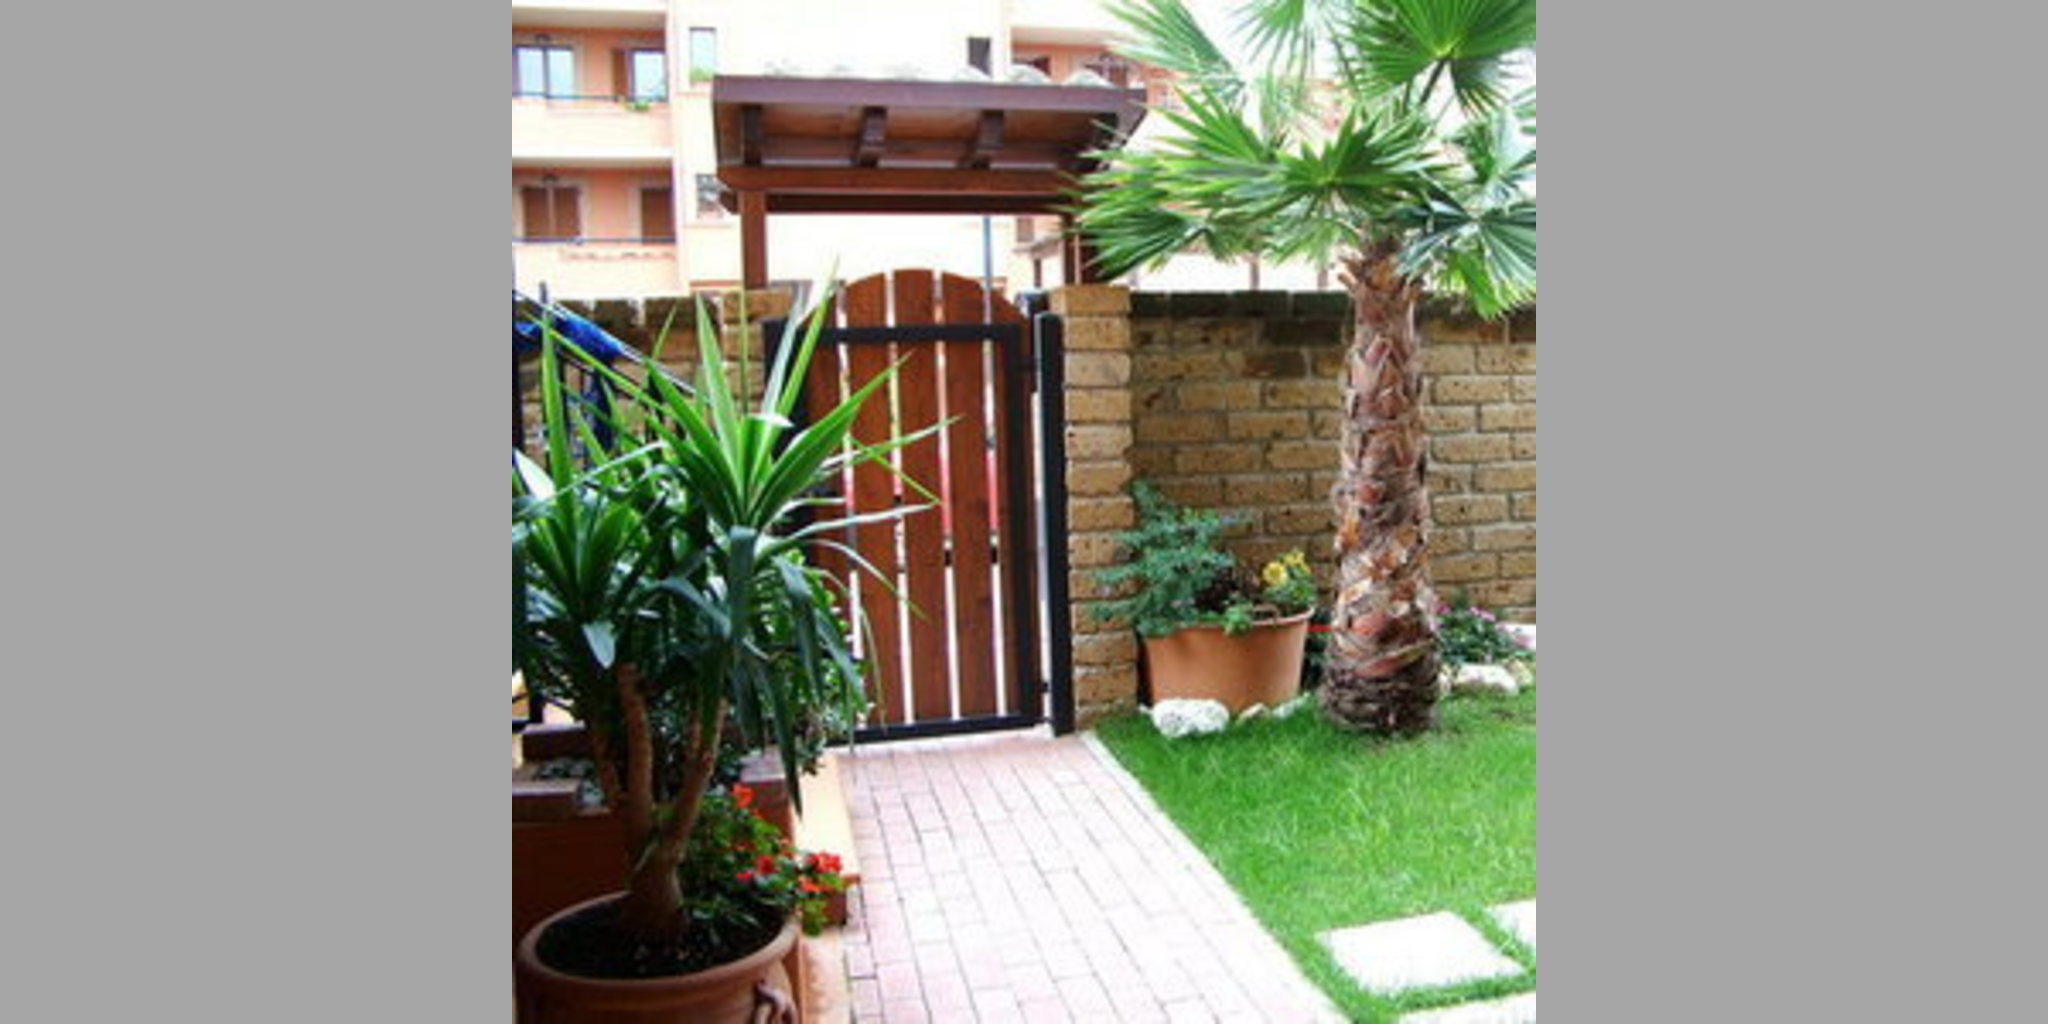 Bed & Breakfast Pescara - San Silvestro